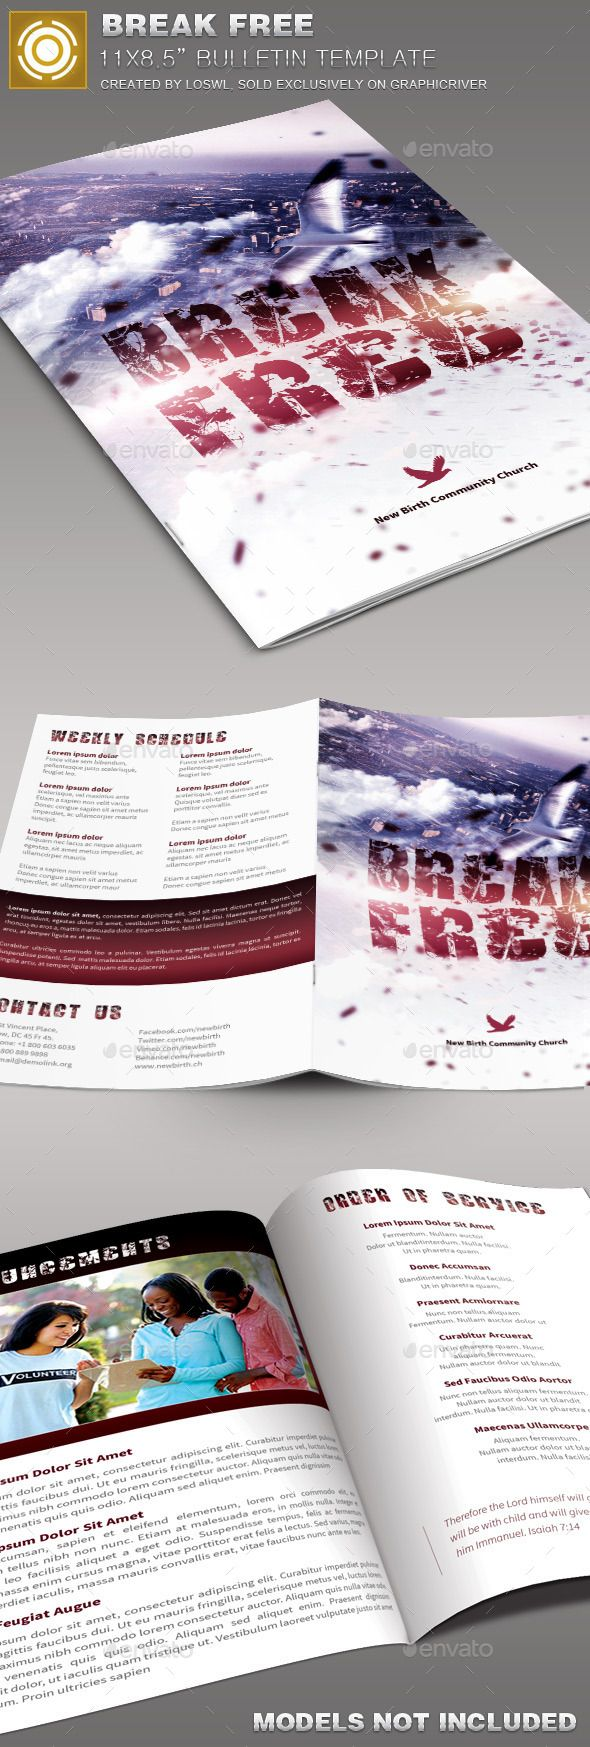 Generous 1.5 Button Template Huge 10 Tips For Writing A Resume Solid 100 Free Resume Builder And Download 1099 Agreement Template Young 13th Birthday Invitation Templates Red2 Page Resume Format Example 284 Best Images About Ideas For Bulletins On Pinterest ..